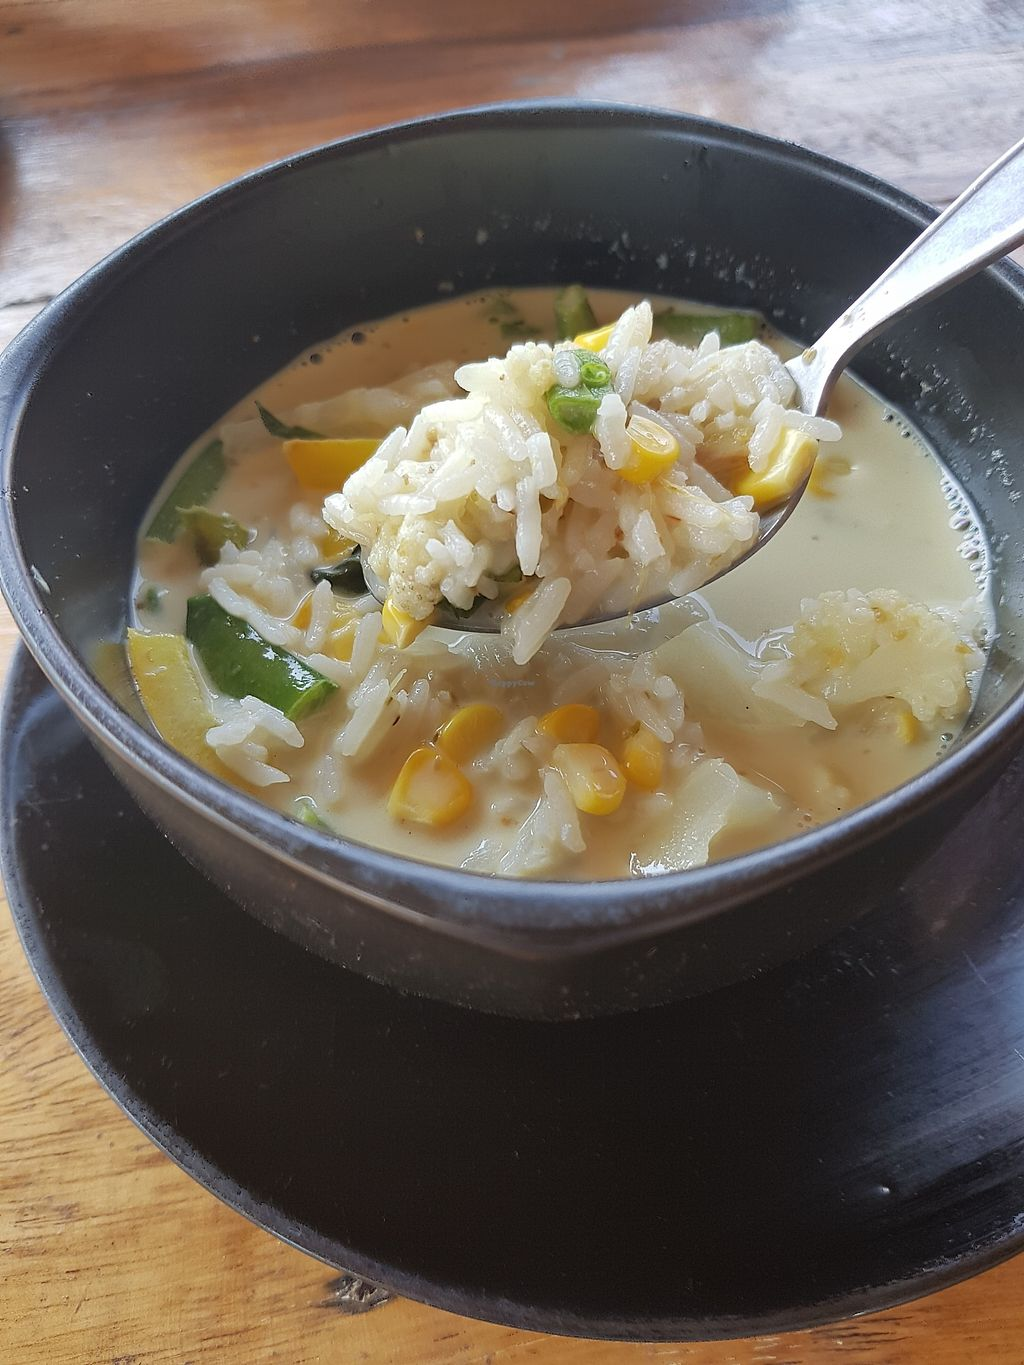 """Photo of The Chill  by <a href=""""/members/profile/vegatleticas"""">vegatleticas</a> <br/>Green curry soup with rice  <br/> March 4, 2018  - <a href='/contact/abuse/image/86748/366482'>Report</a>"""